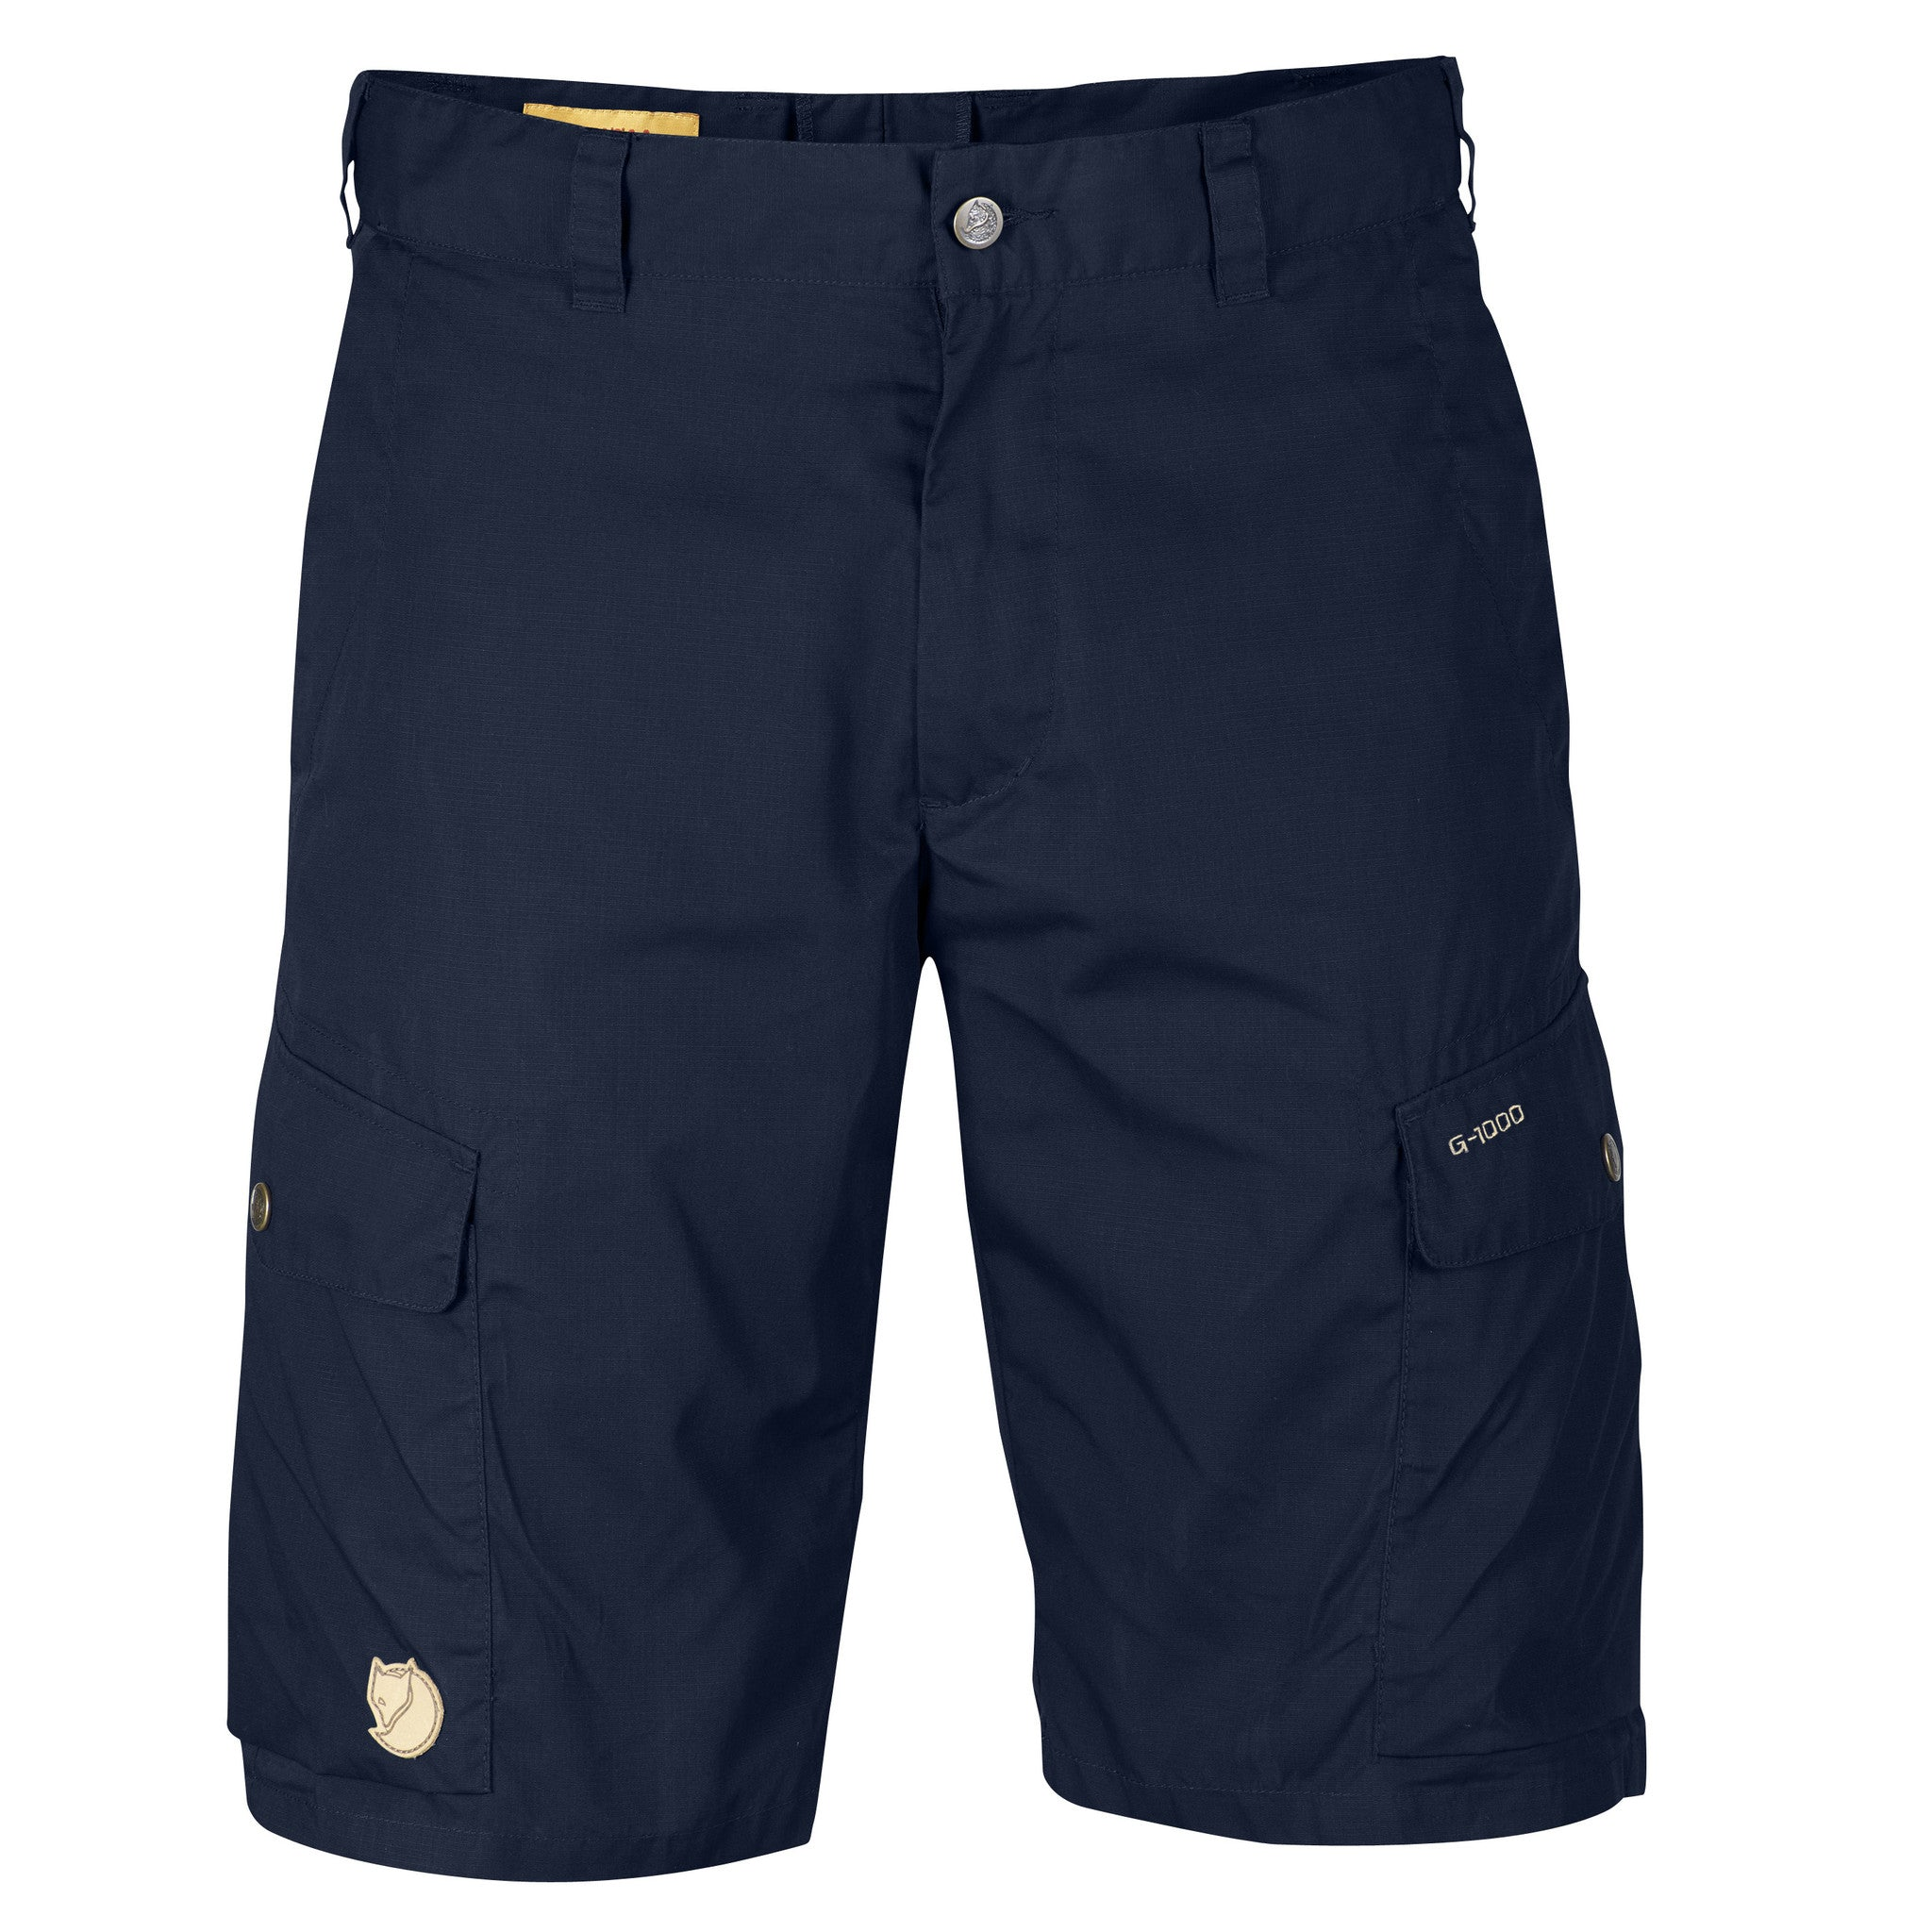 Ruaha Shorts - Dark Navy